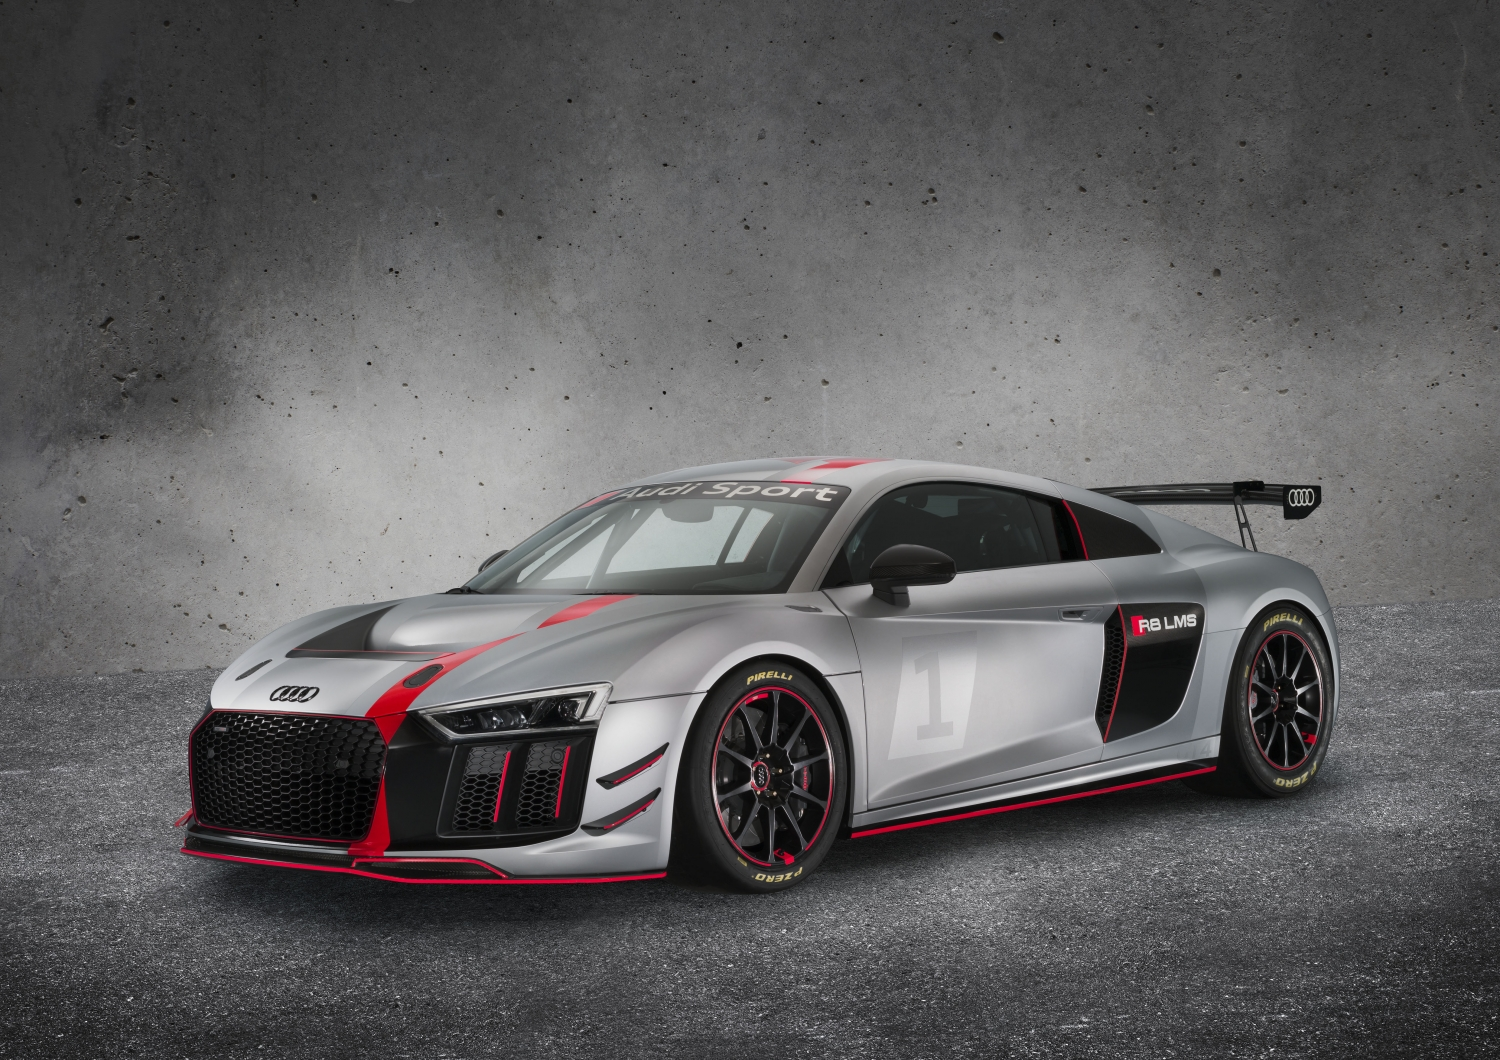 The Audi R8 LMS GT4 Stands For Production Based Racing. Directly Derived  From The Road Approved Audi R8 Coupe V10, The GT4 Is Powerful And Offers A  High ...